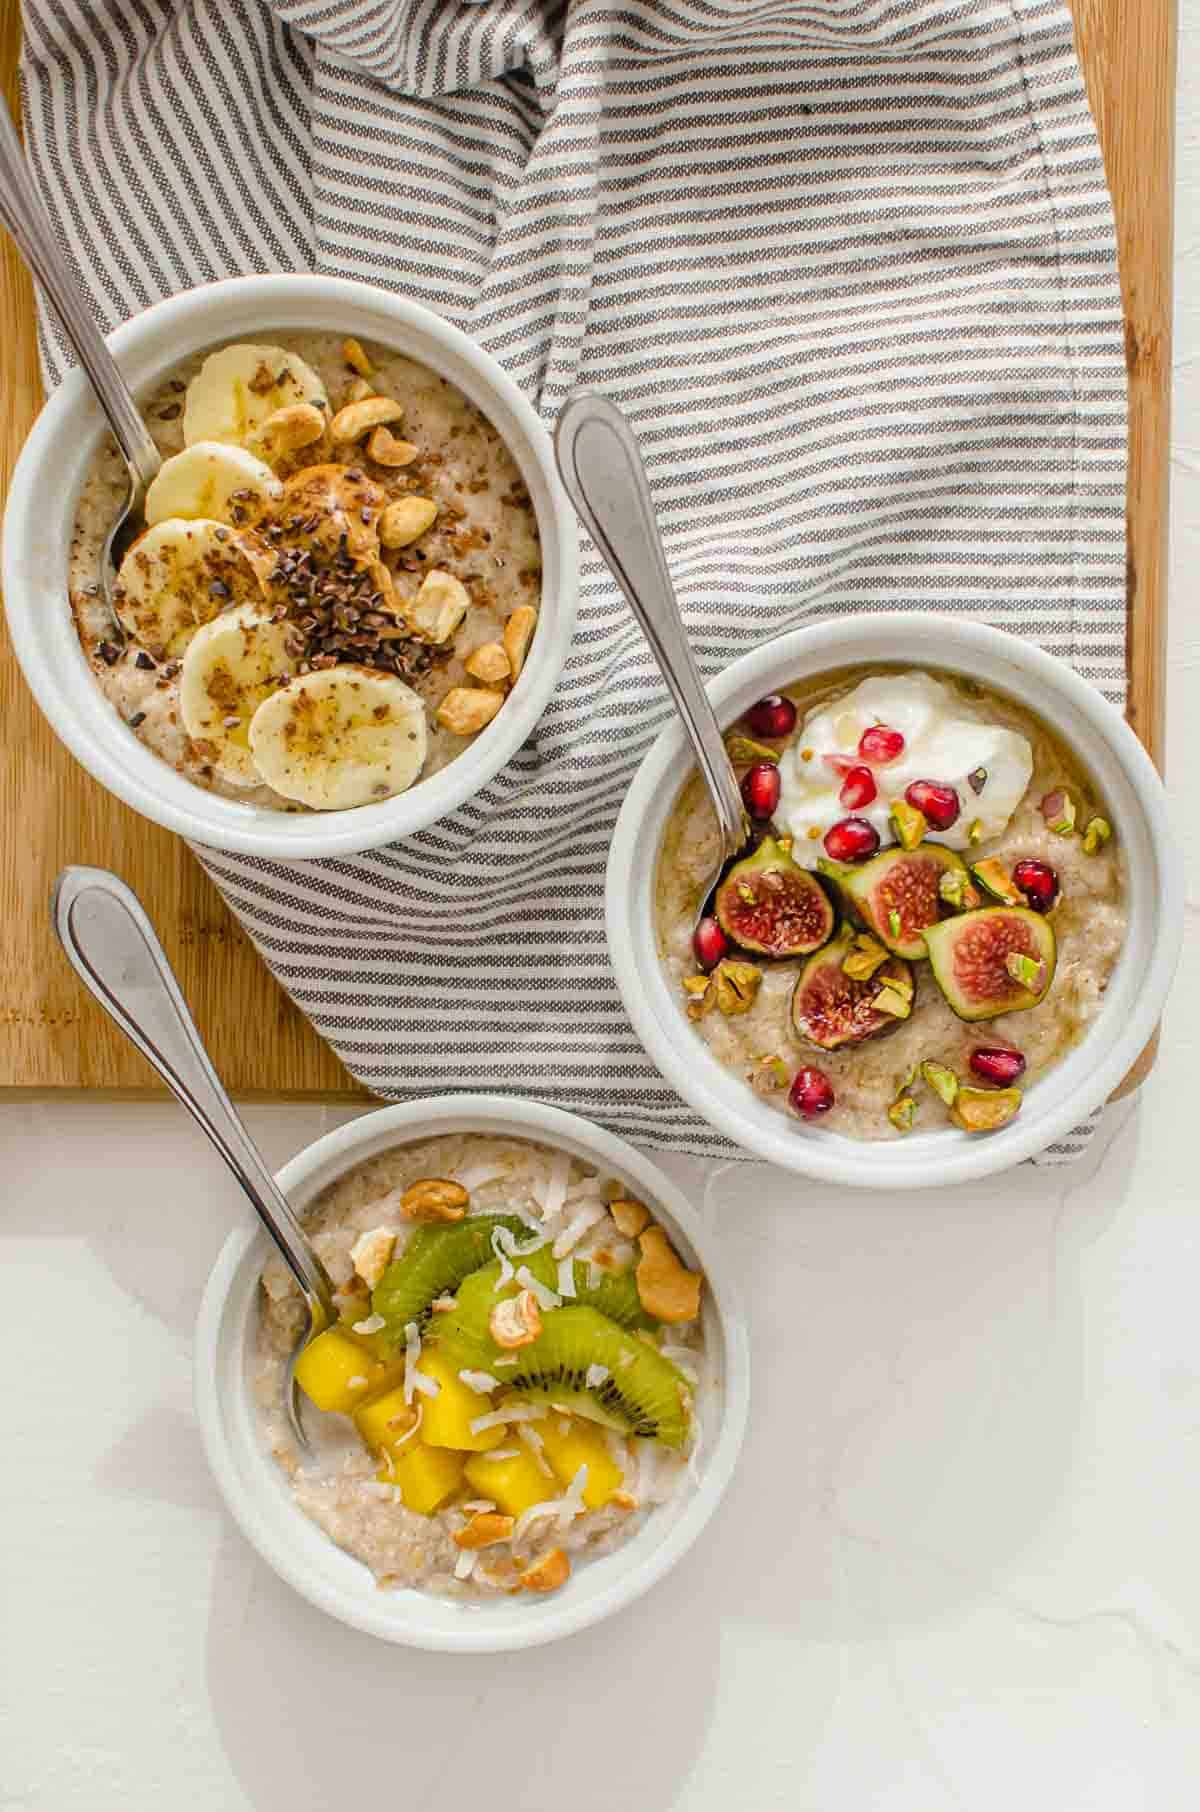 Birds eye view of three protein oatmeal bowls with different topping variations.